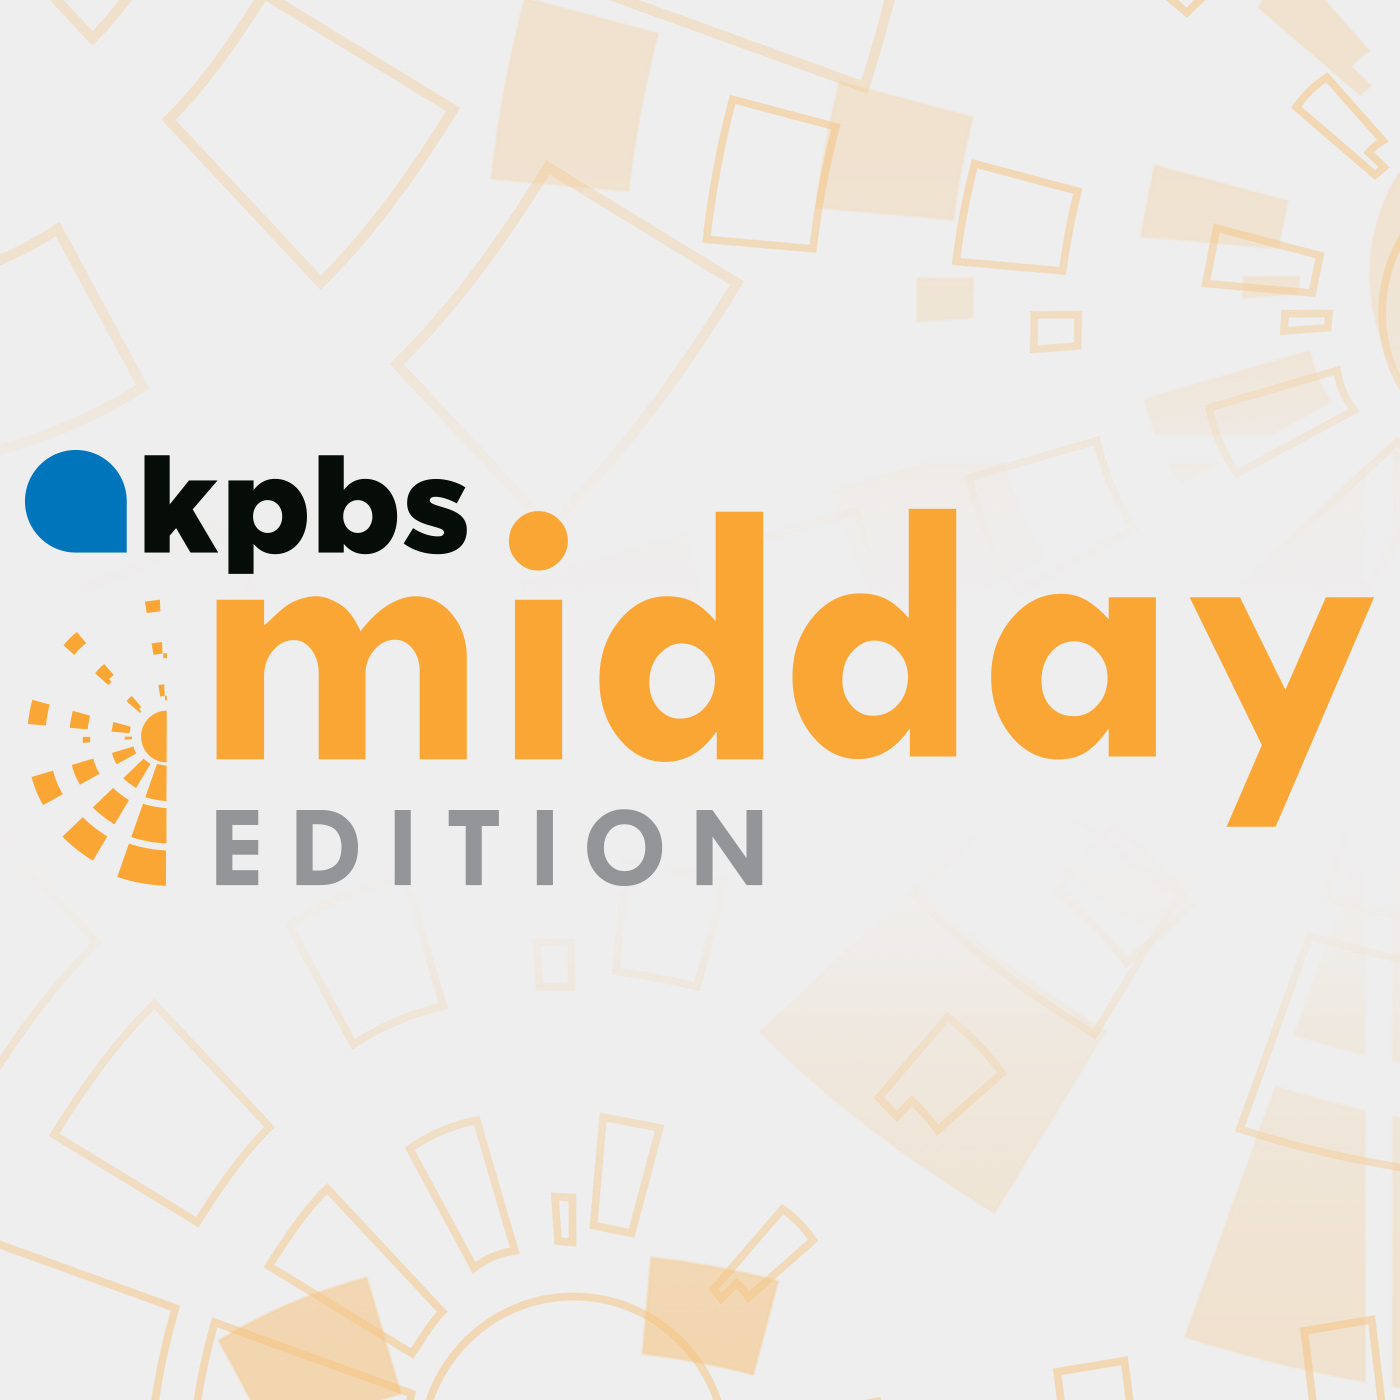 Podcast brand for KPBS segments Midday Edition